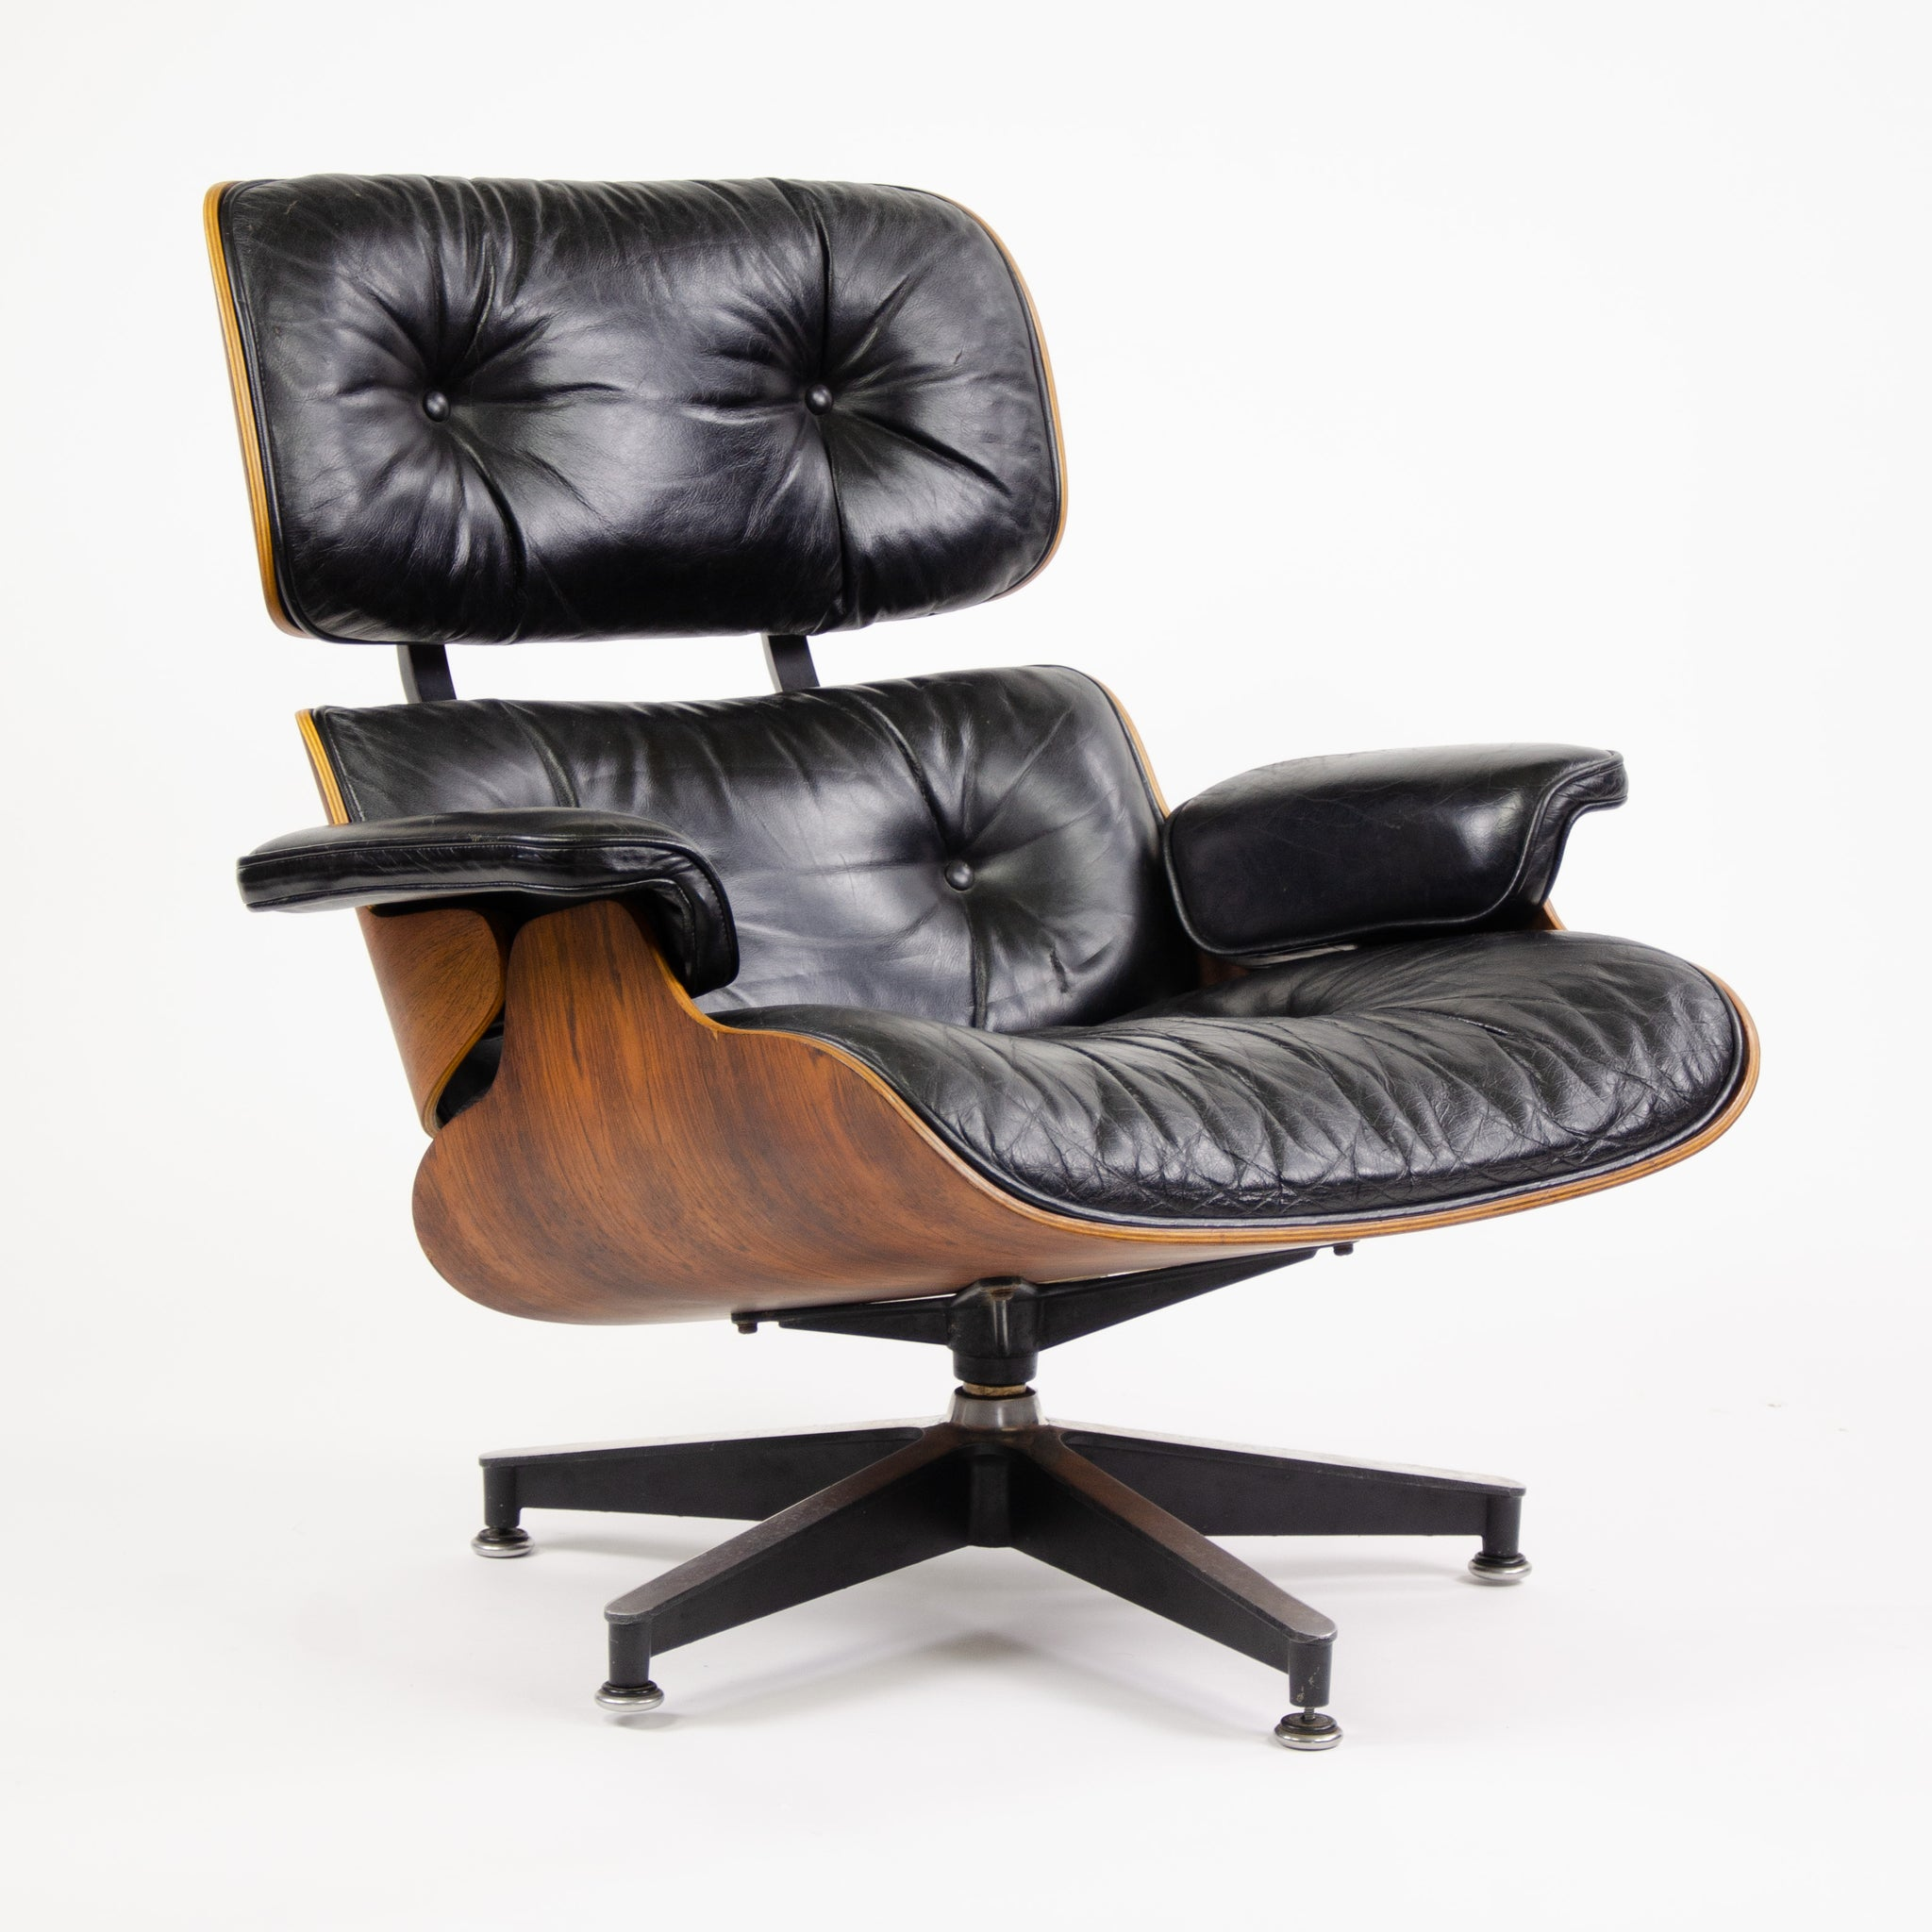 SOLD Herman Miller Eames Lounge Chair & Ottoman Rosewood 670 671 Black Leather 1970's